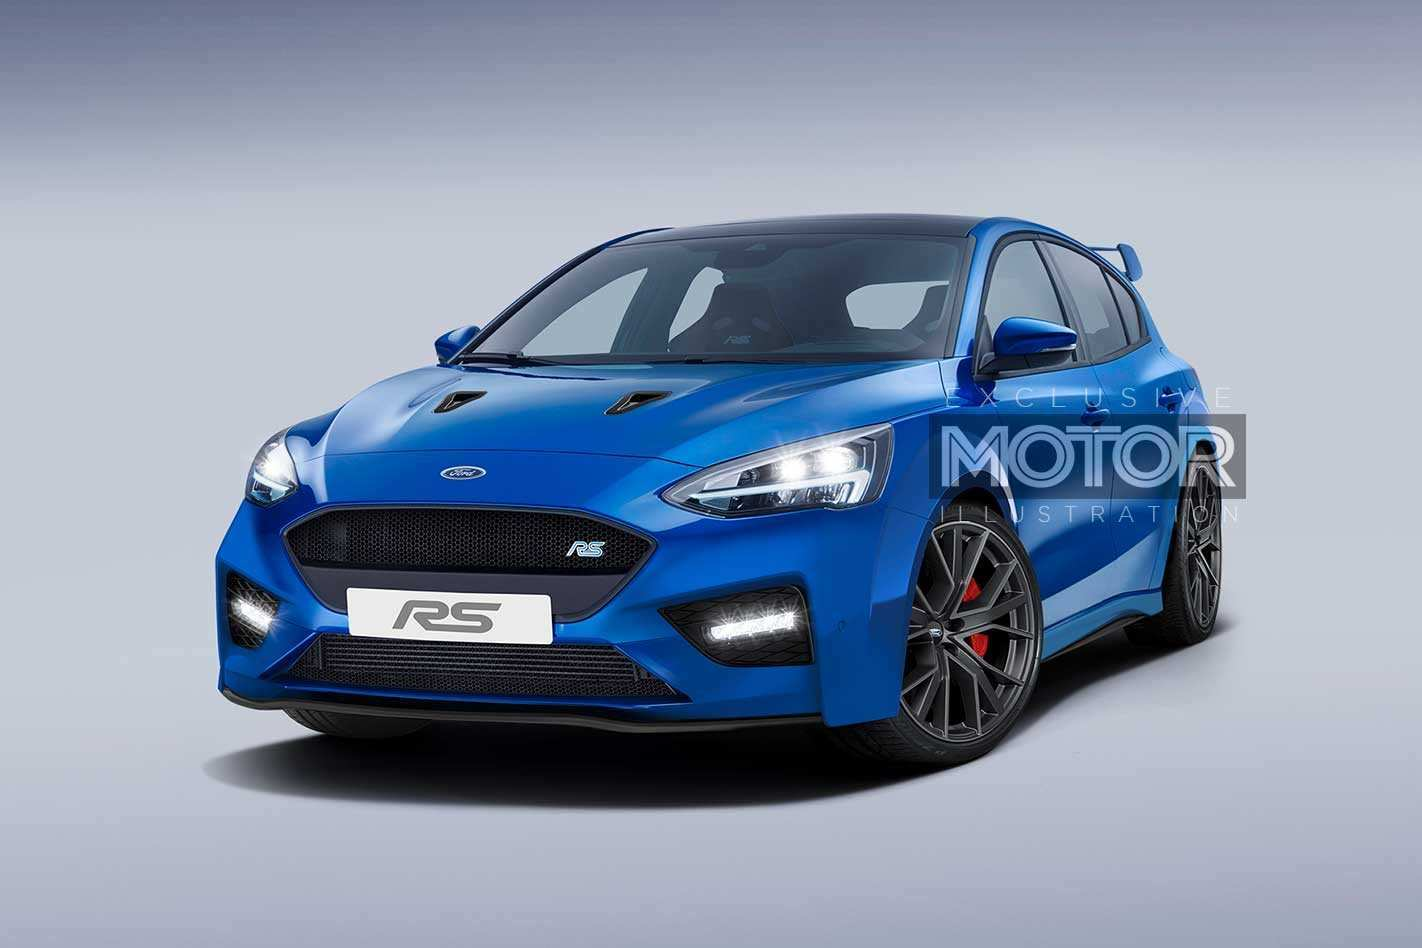 41 Best Review 2020 Focus Rs Concept for 2020 Focus Rs